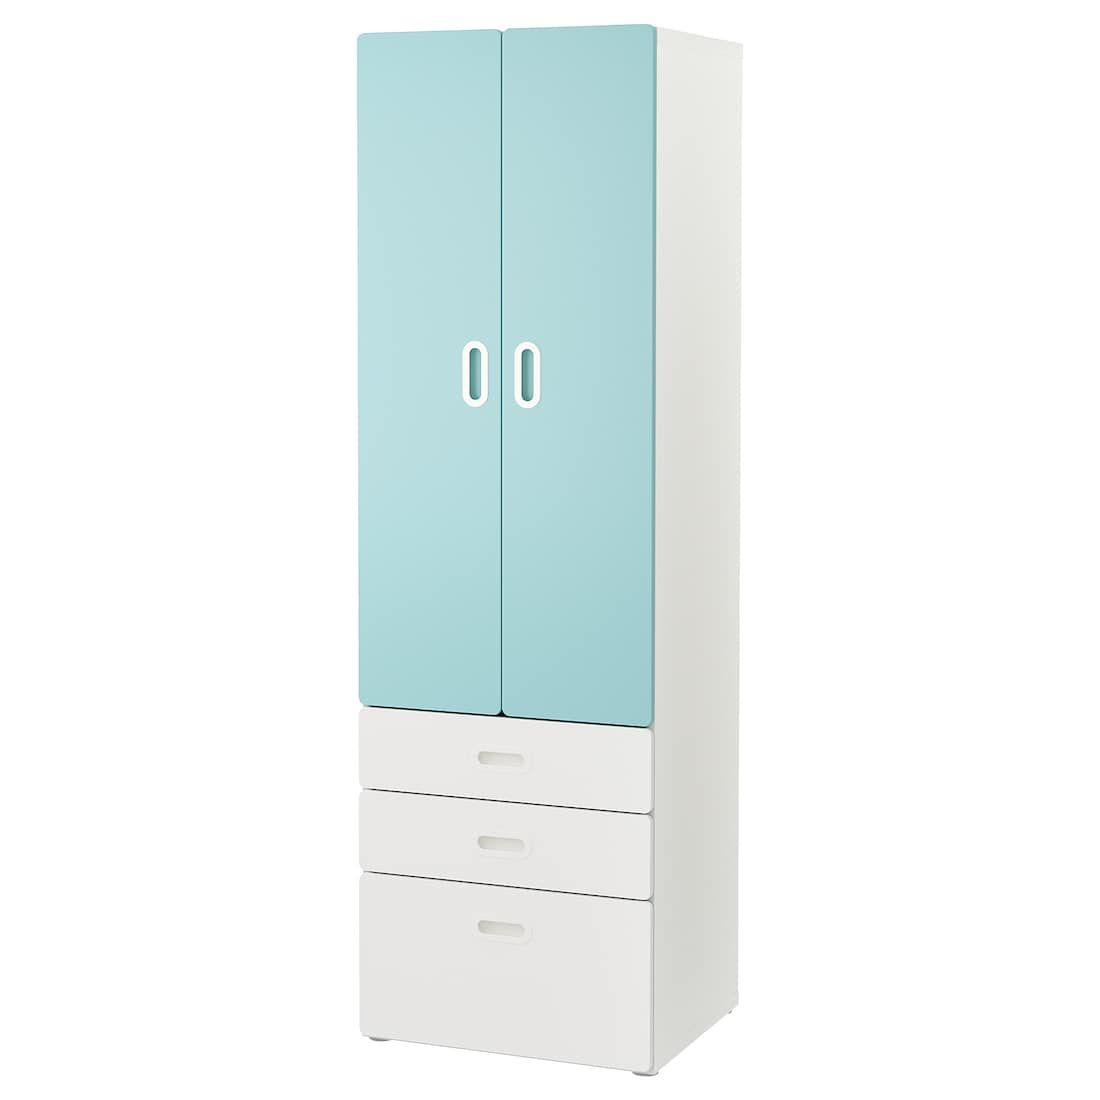 Stuva Fritids Wardrobe White Light Blue 23 5 8x19 5 8x75 5 8 Learn More Ikea Ikea Stuva Ikea Storage